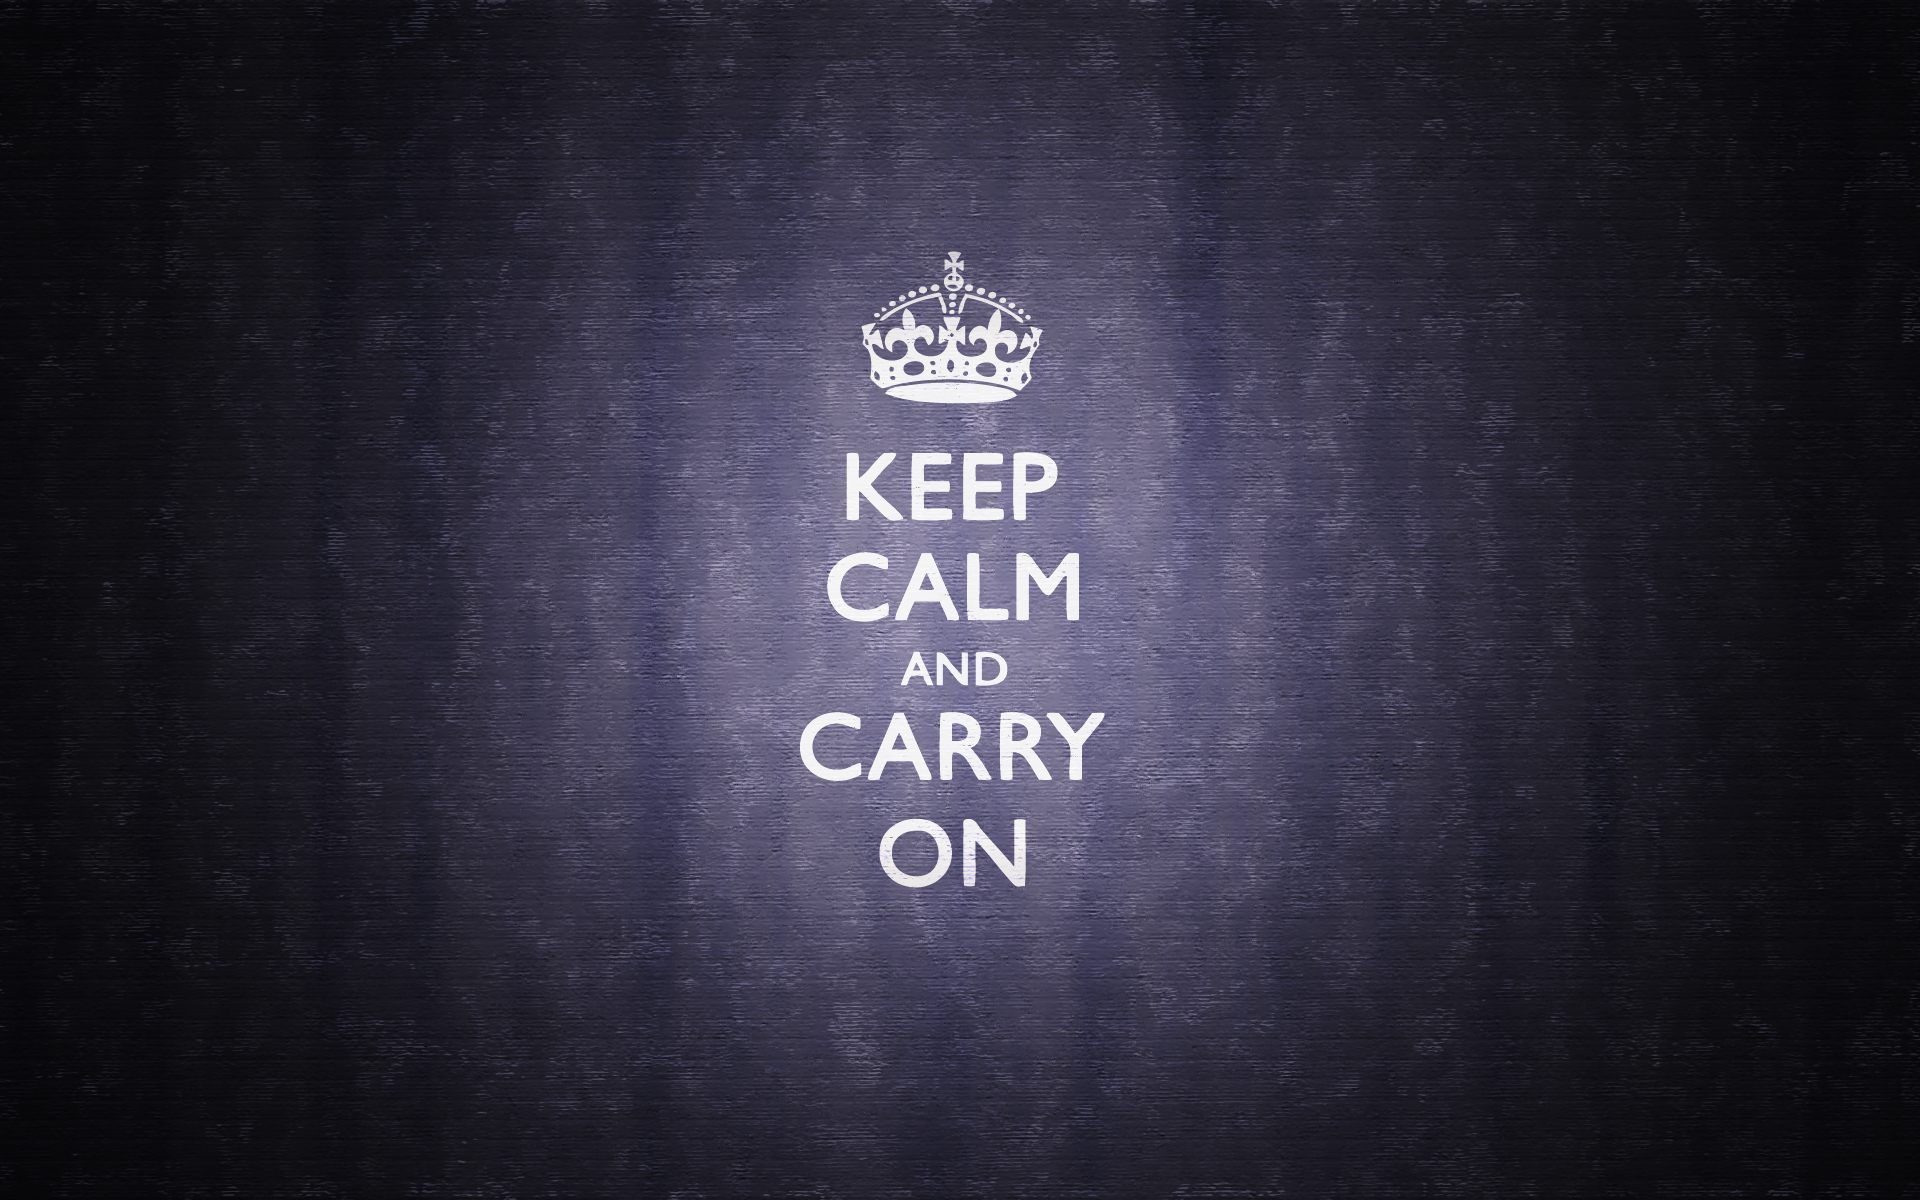 Keep Calm And Carry On Wallpaper HD Download For Desktop